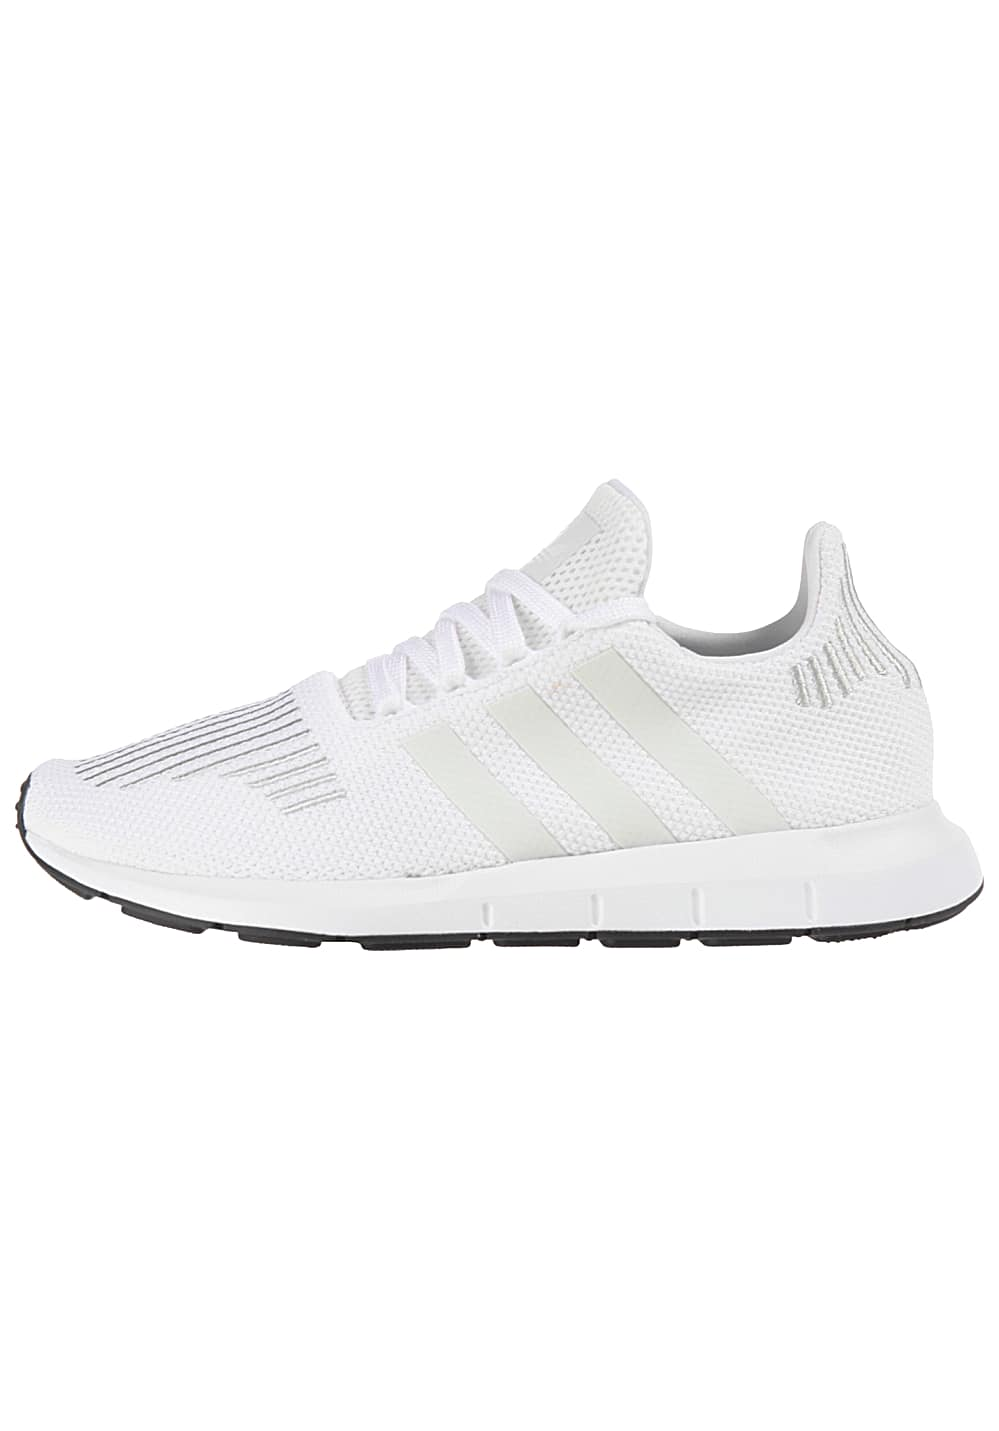 adidas Originals Swift Run - Sneaker - Weiß